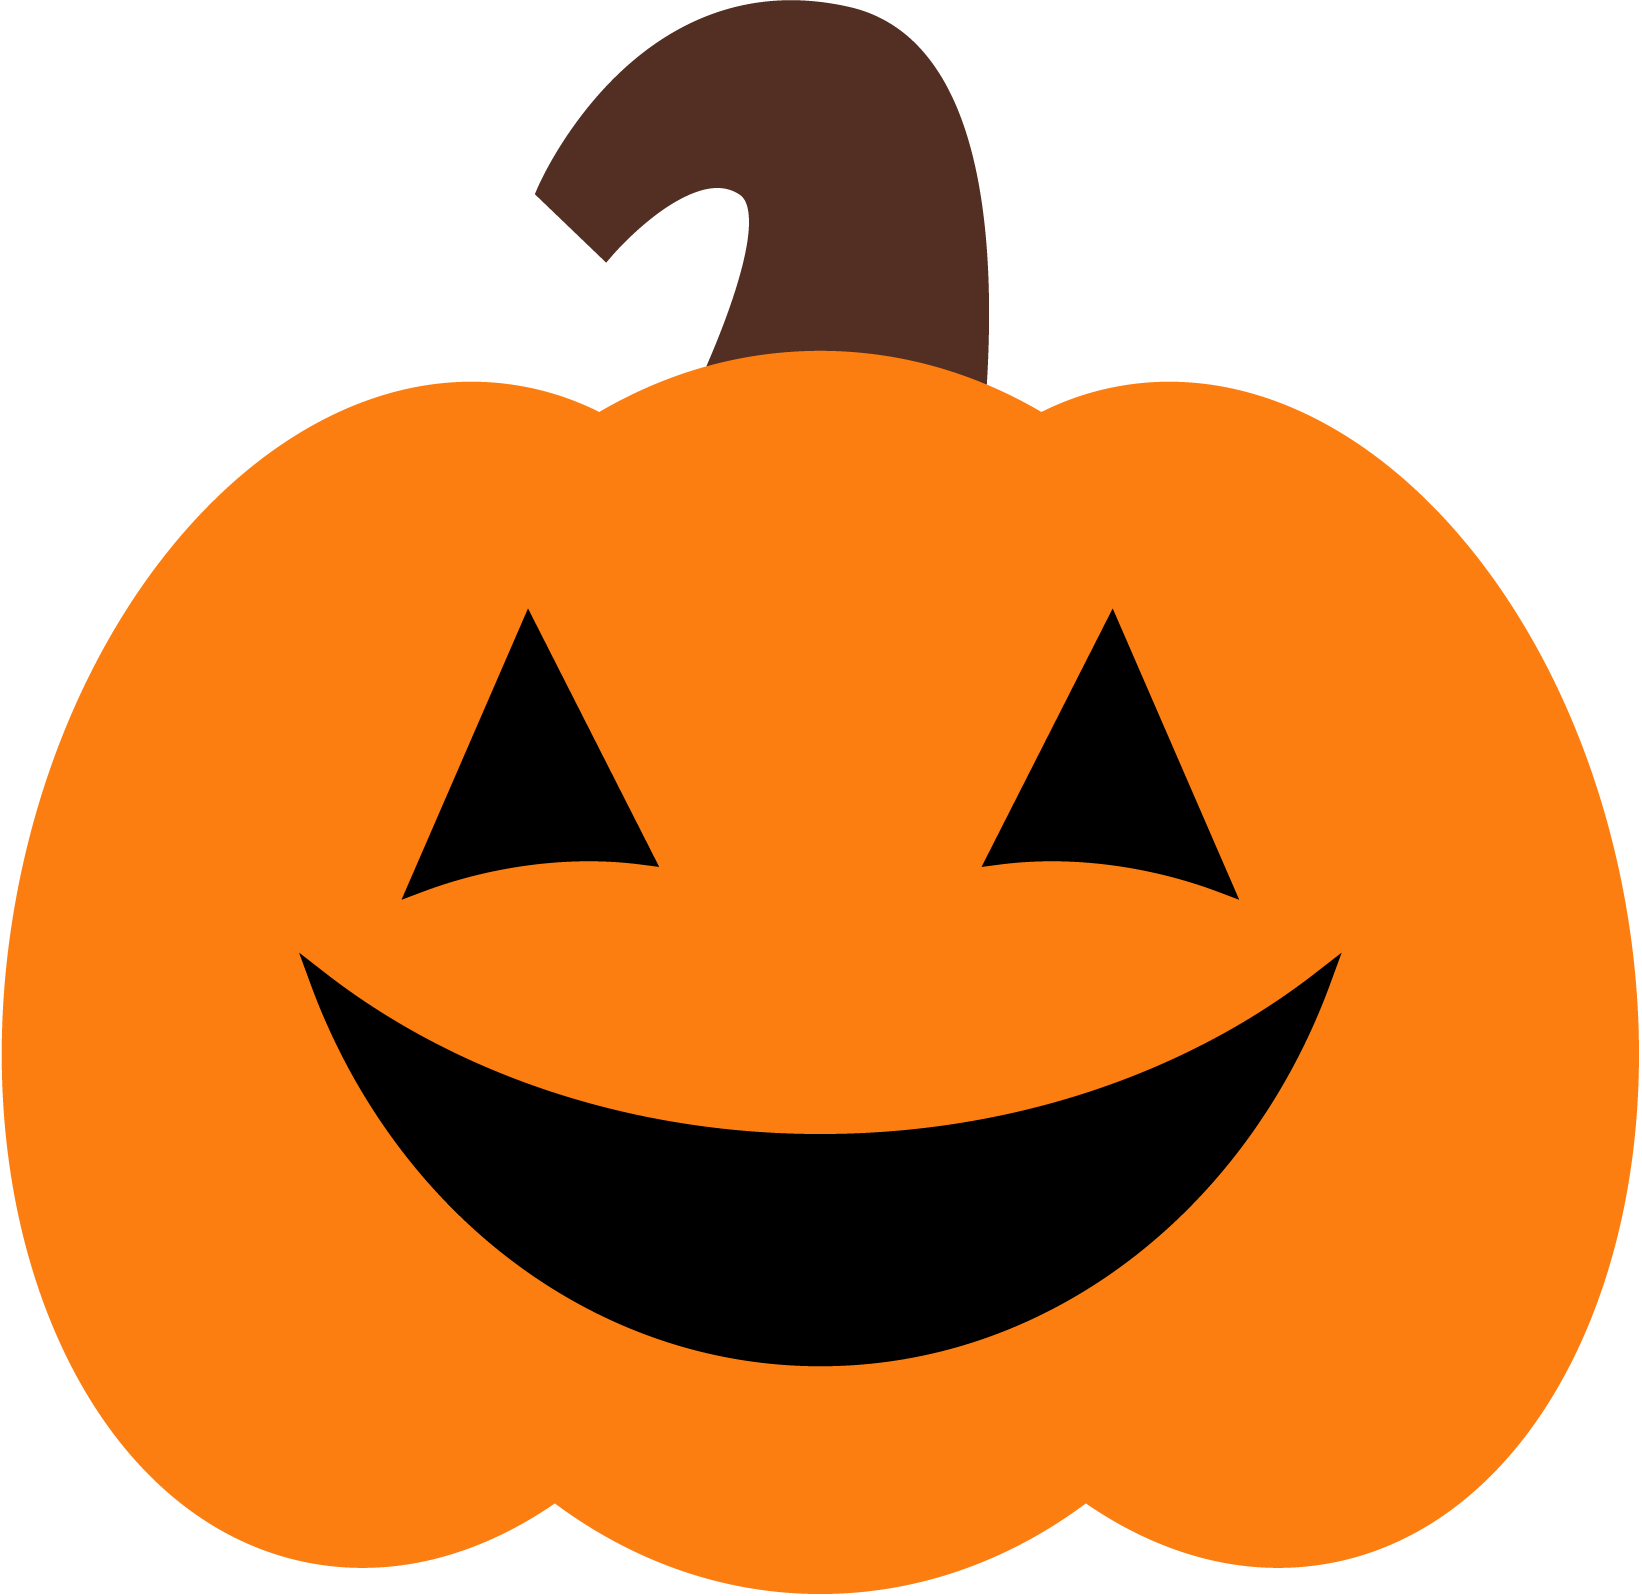 Scary pumpkin face clipart png library library Halloween Pumpkin Clipart at GetDrawings.com | Free for personal use ... png library library